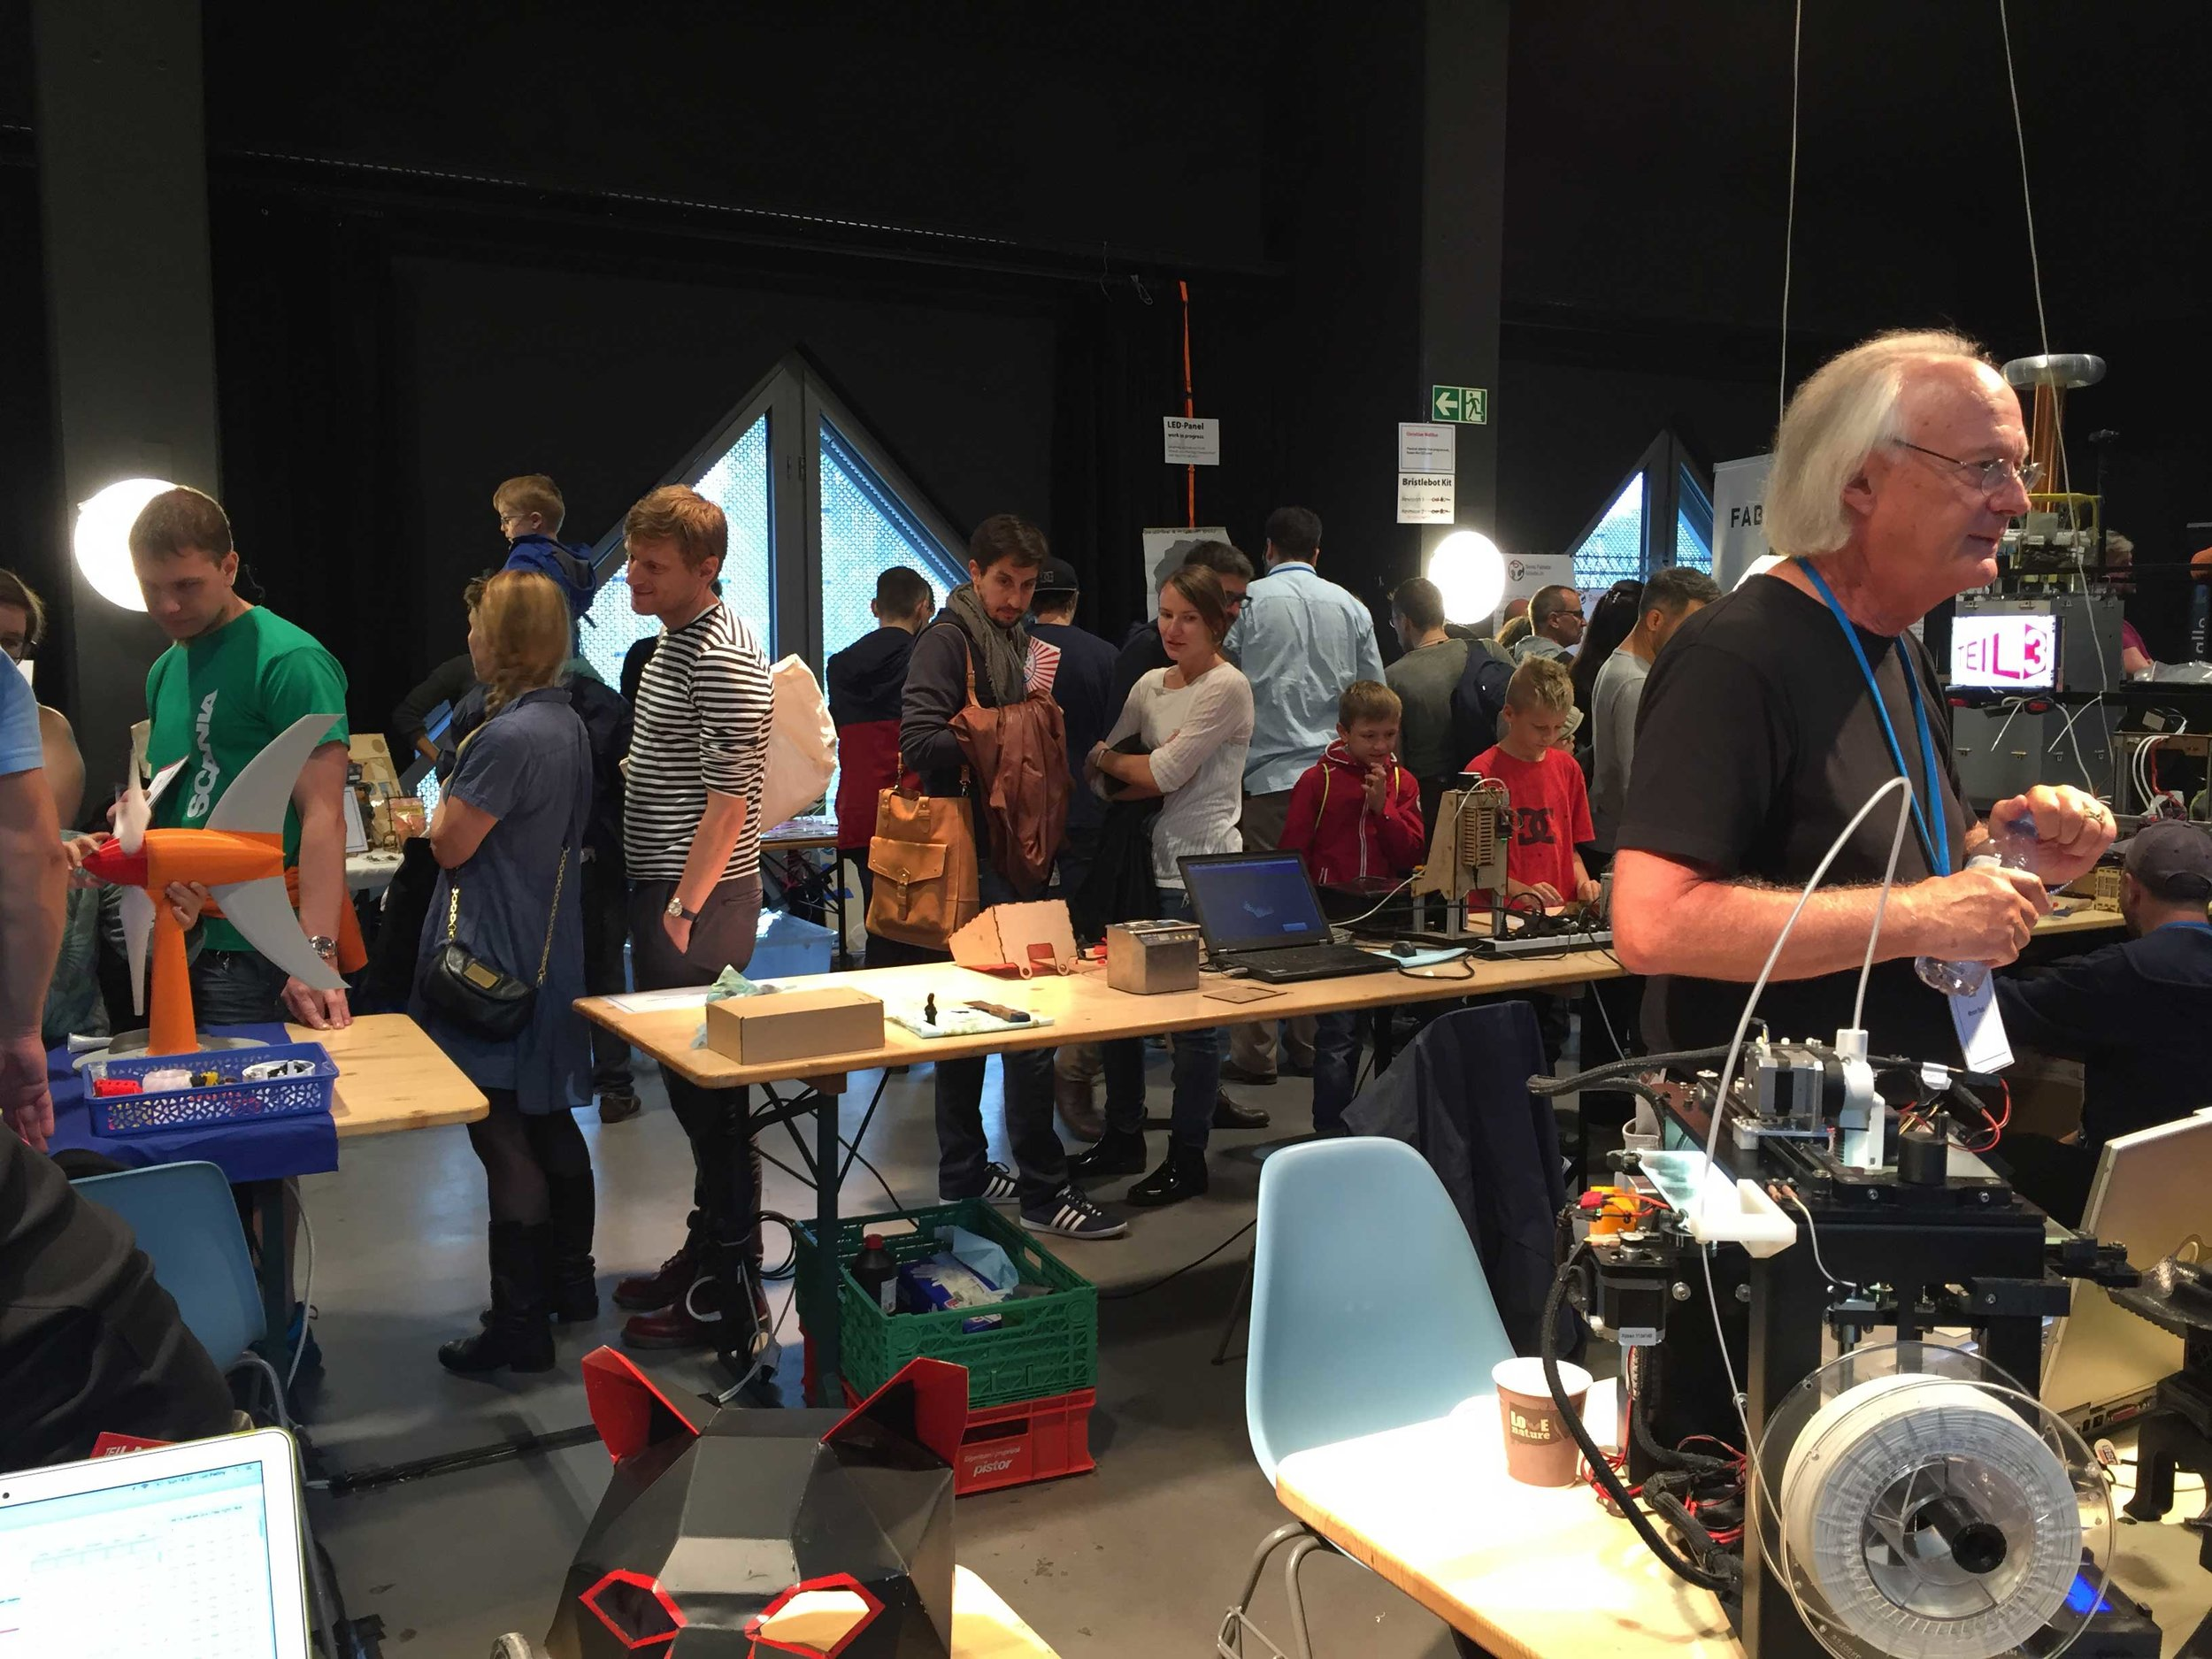 Makers and visitors